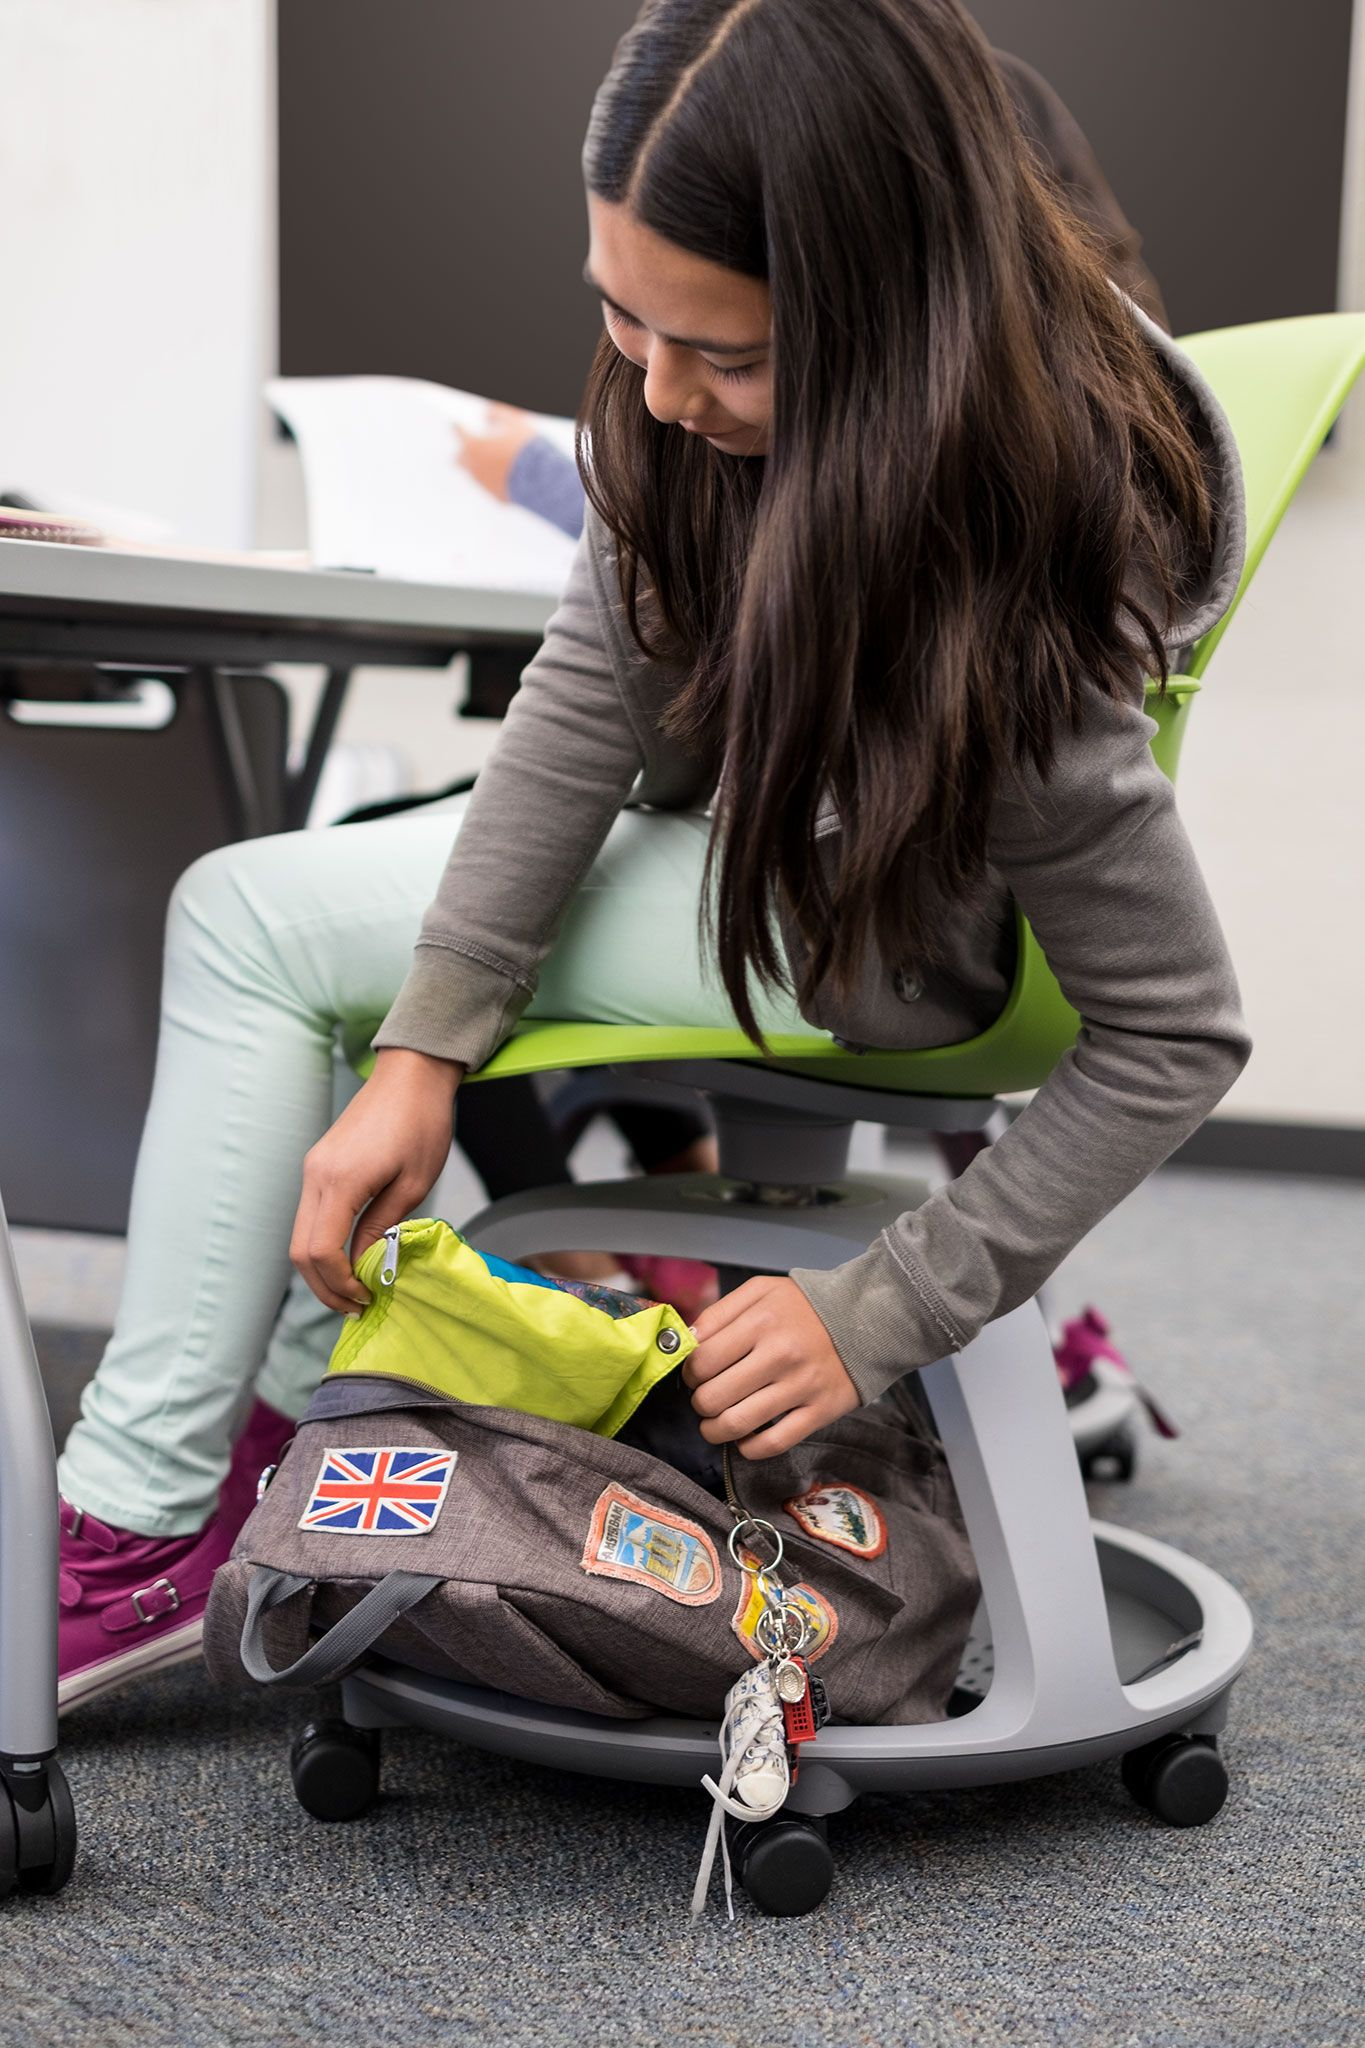 Classroom Backpack Storage with the Steelcase Node Chair